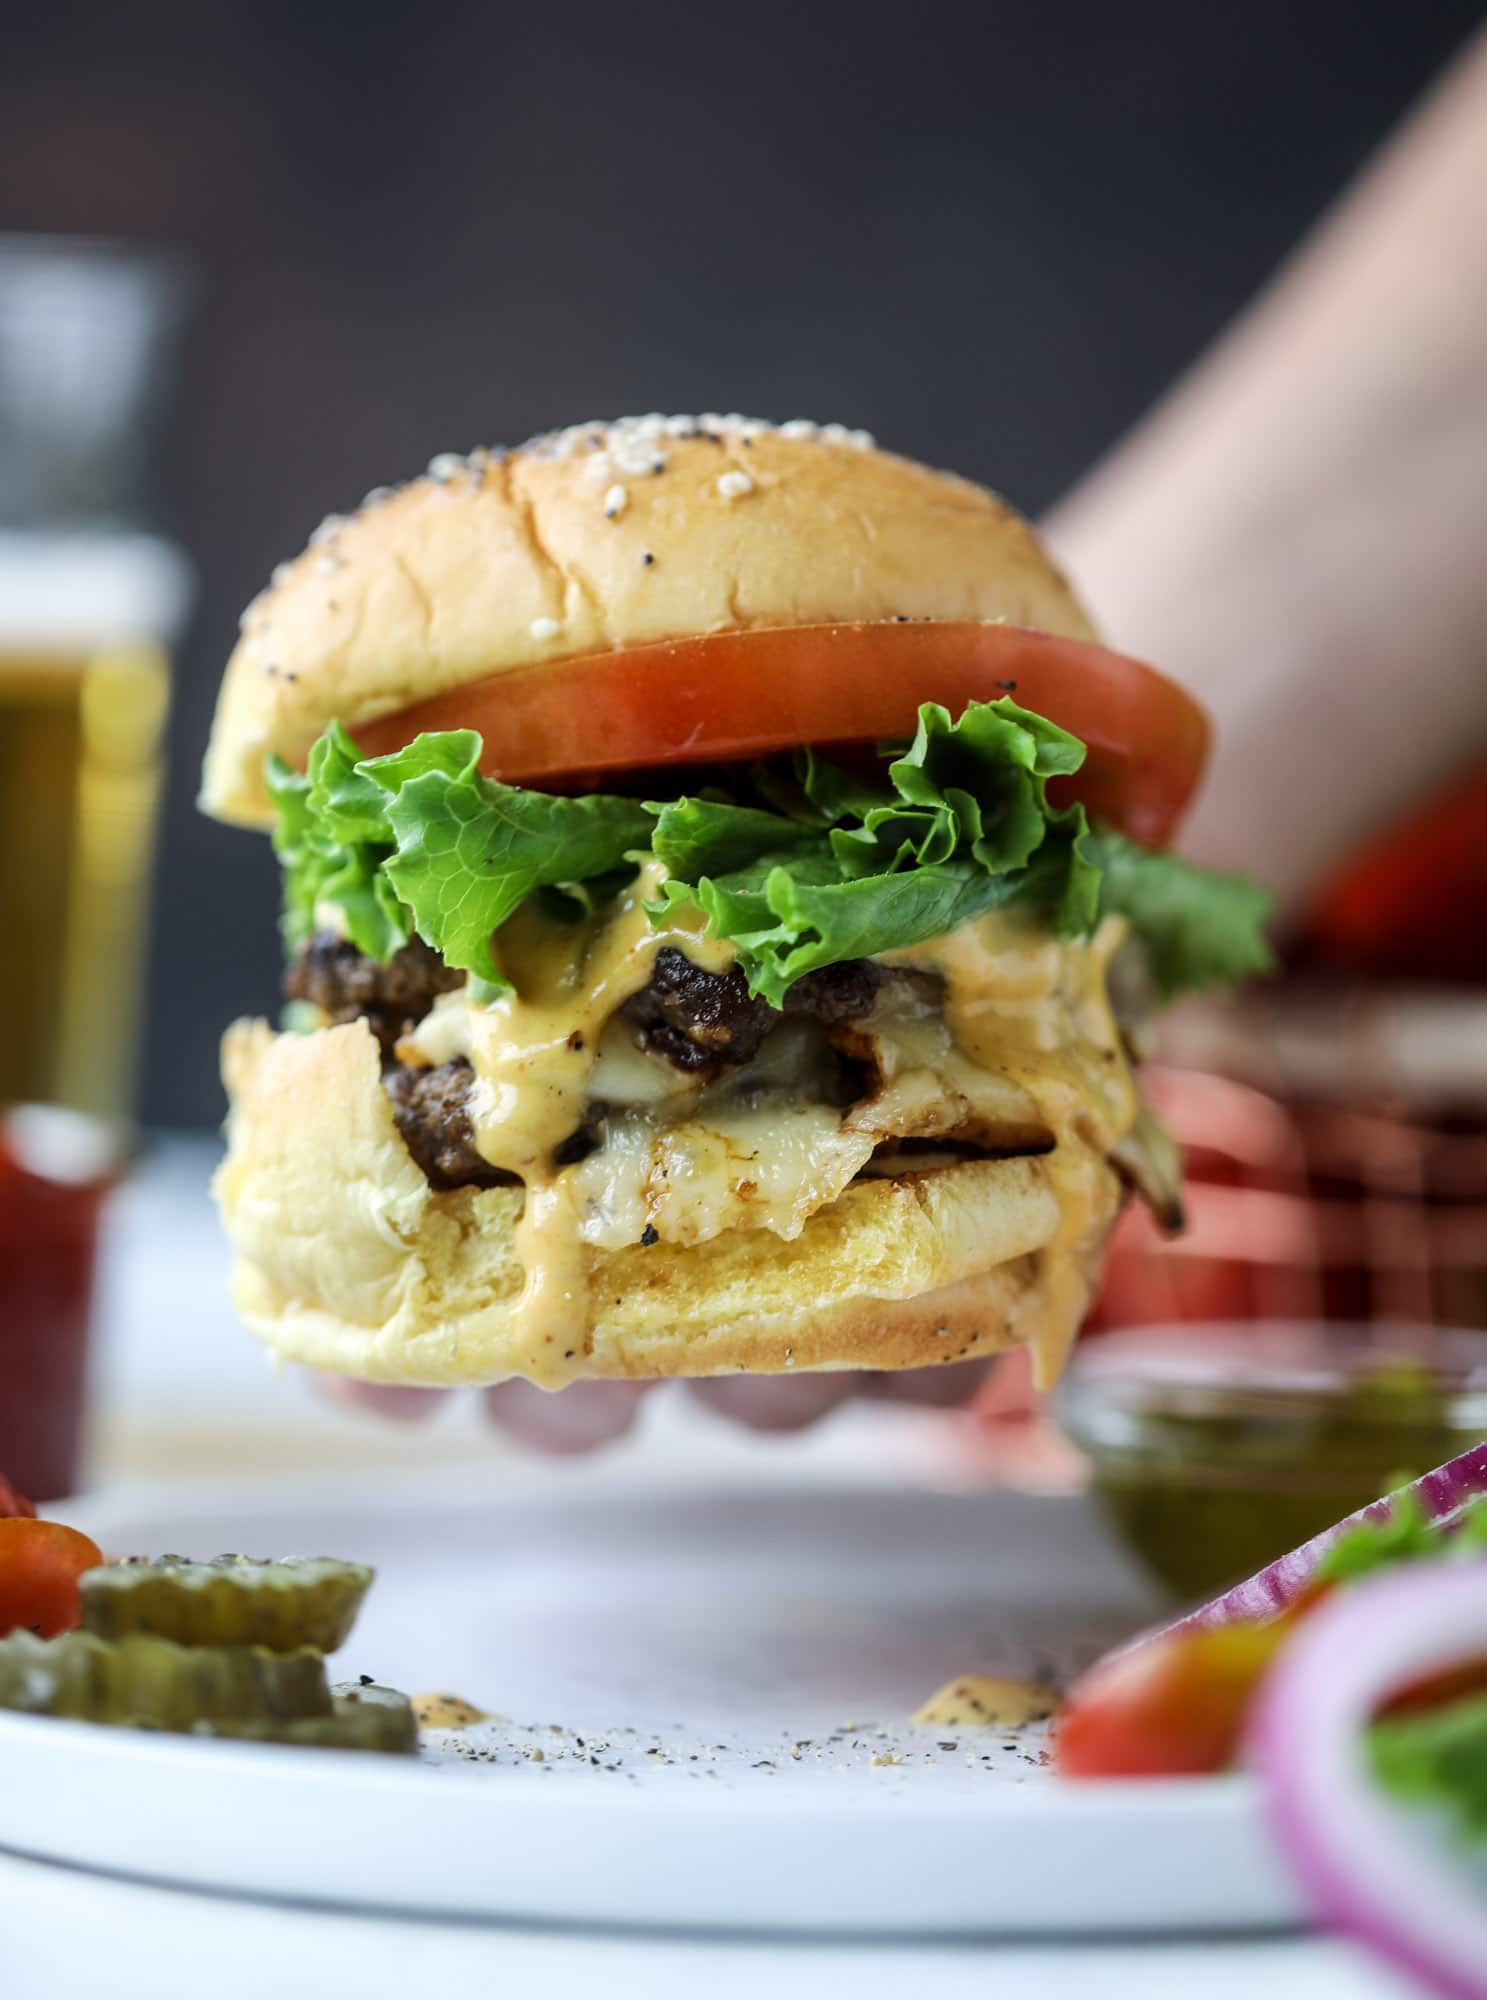 These smash burgers are to die for! All you need are a few ingredients and 30 minutes to make these smash burgers happen. Topped with melty smoked gouda and topped with a creamy, tangy house sauce, these are the best burgers ever! I howsweeteats.com #smash #burgers #smoked #gouda #special #sauce